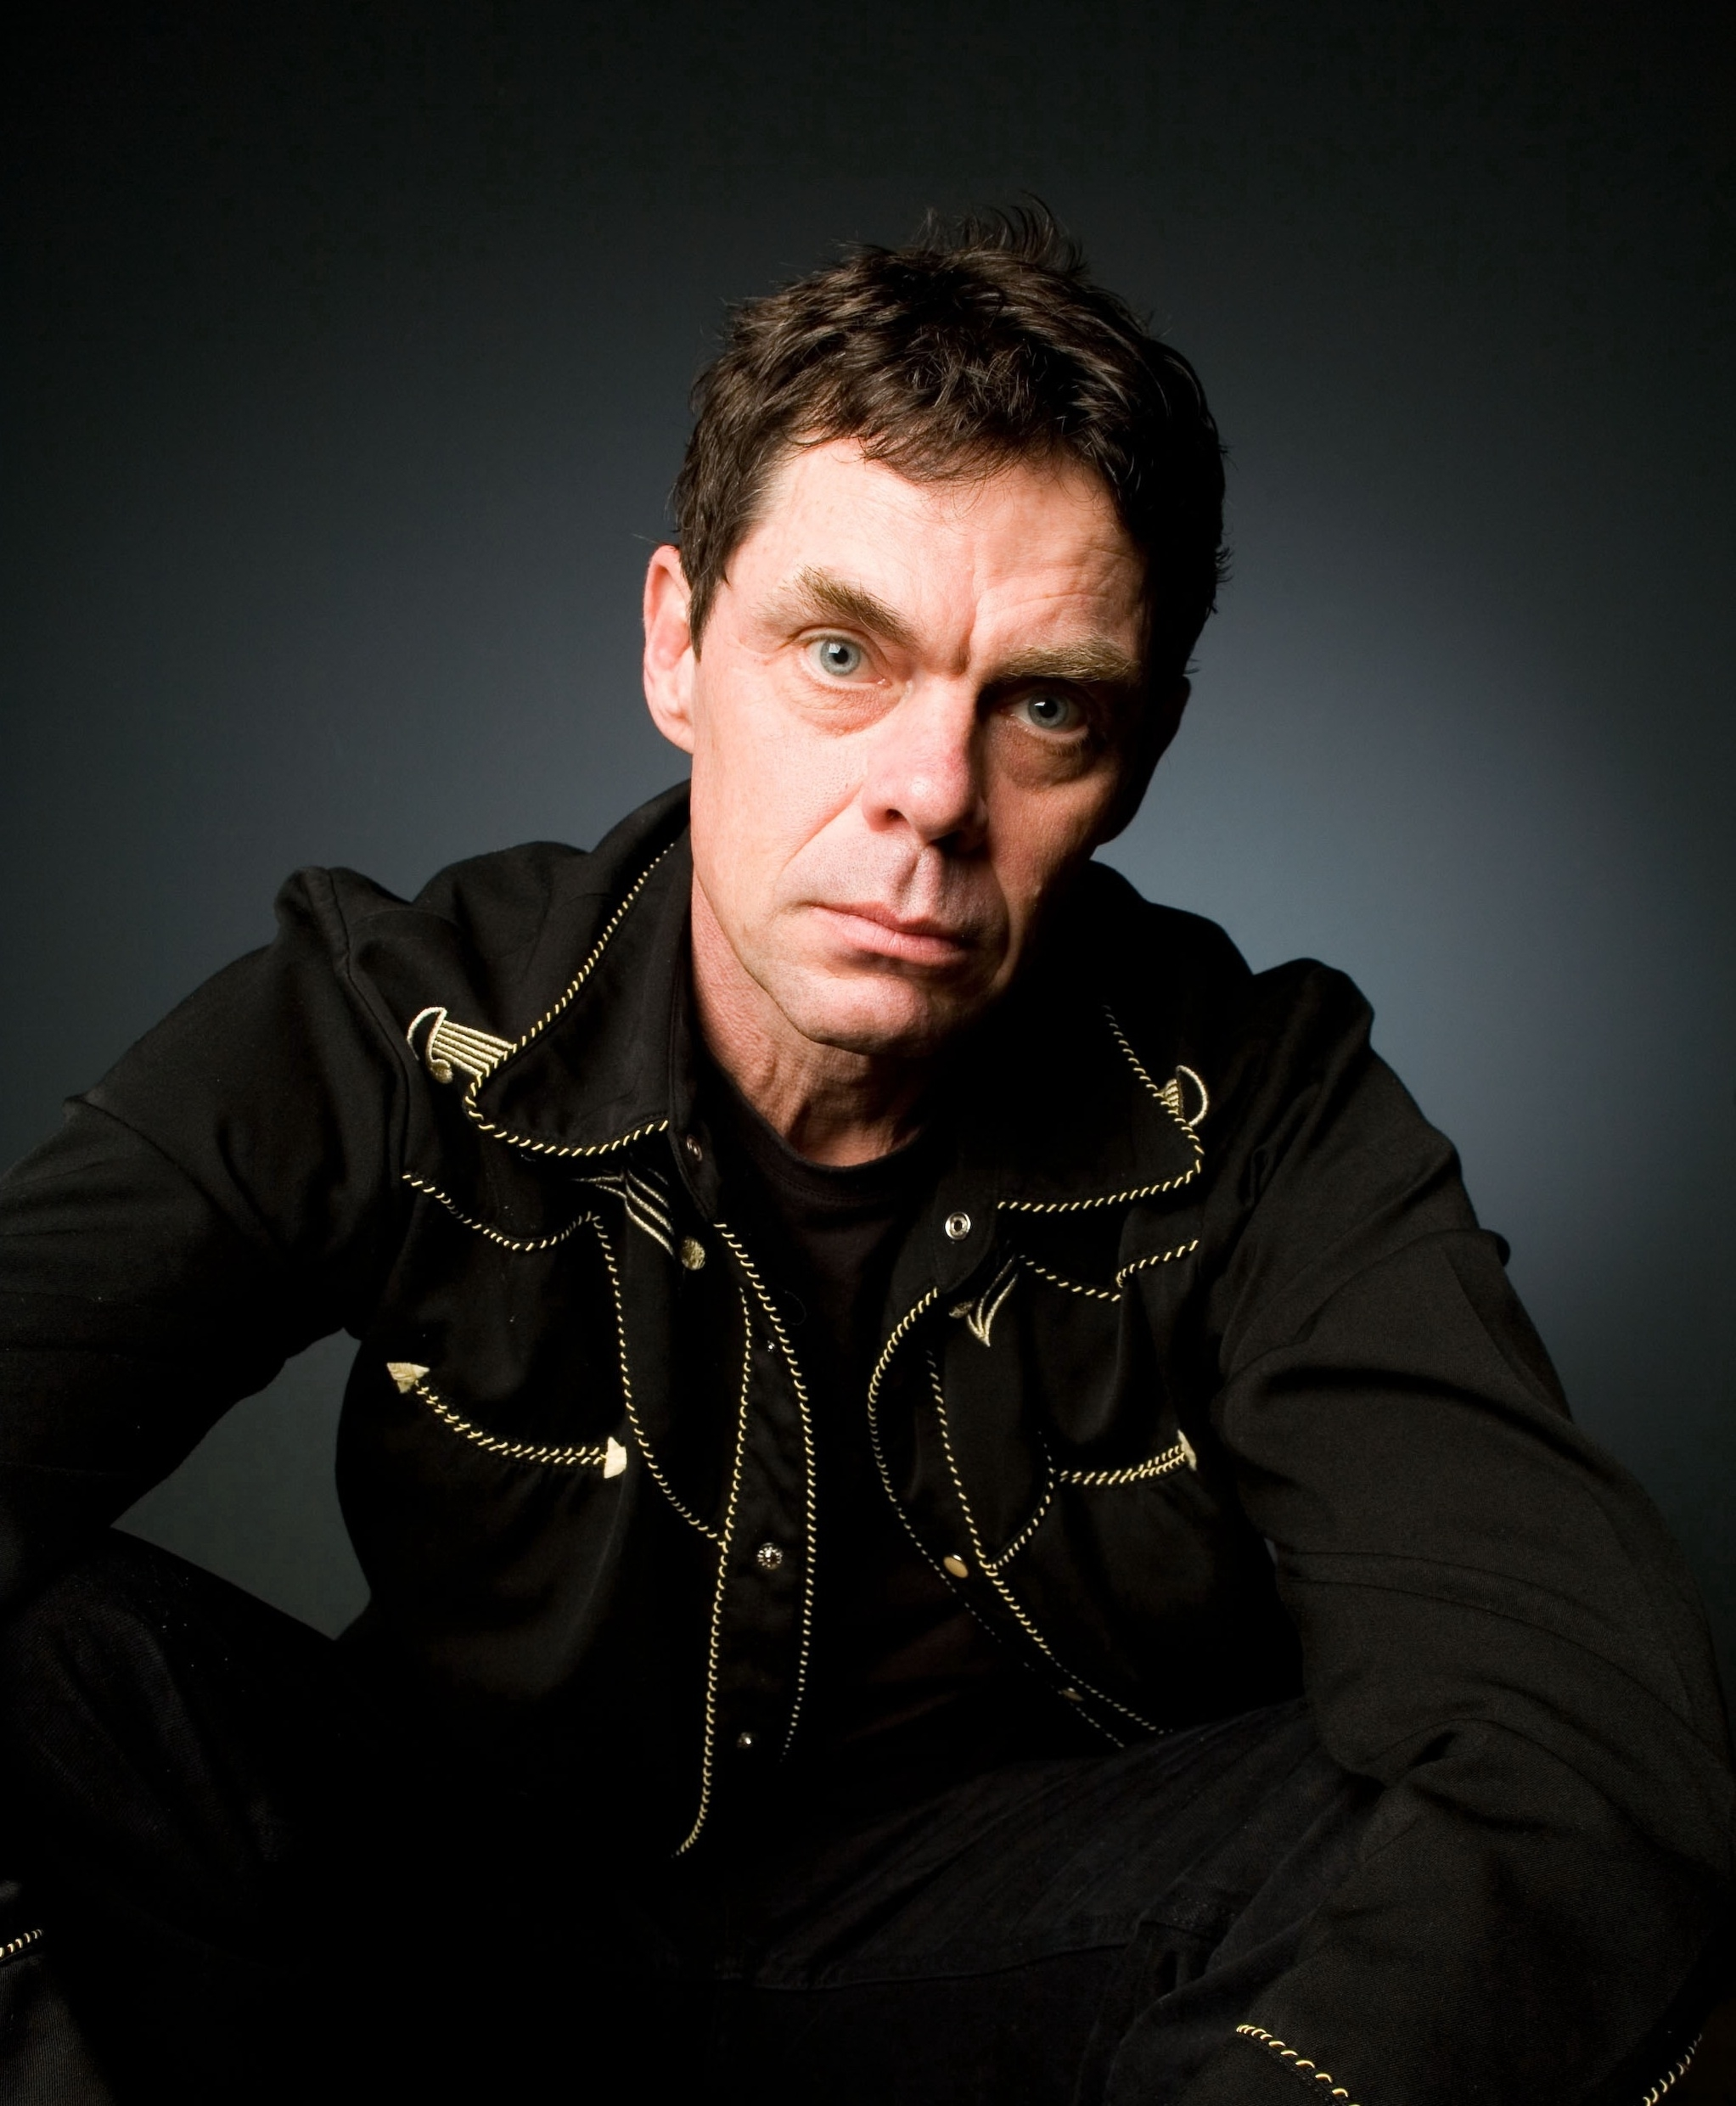 Virginia's Rich Hall is a master comedian